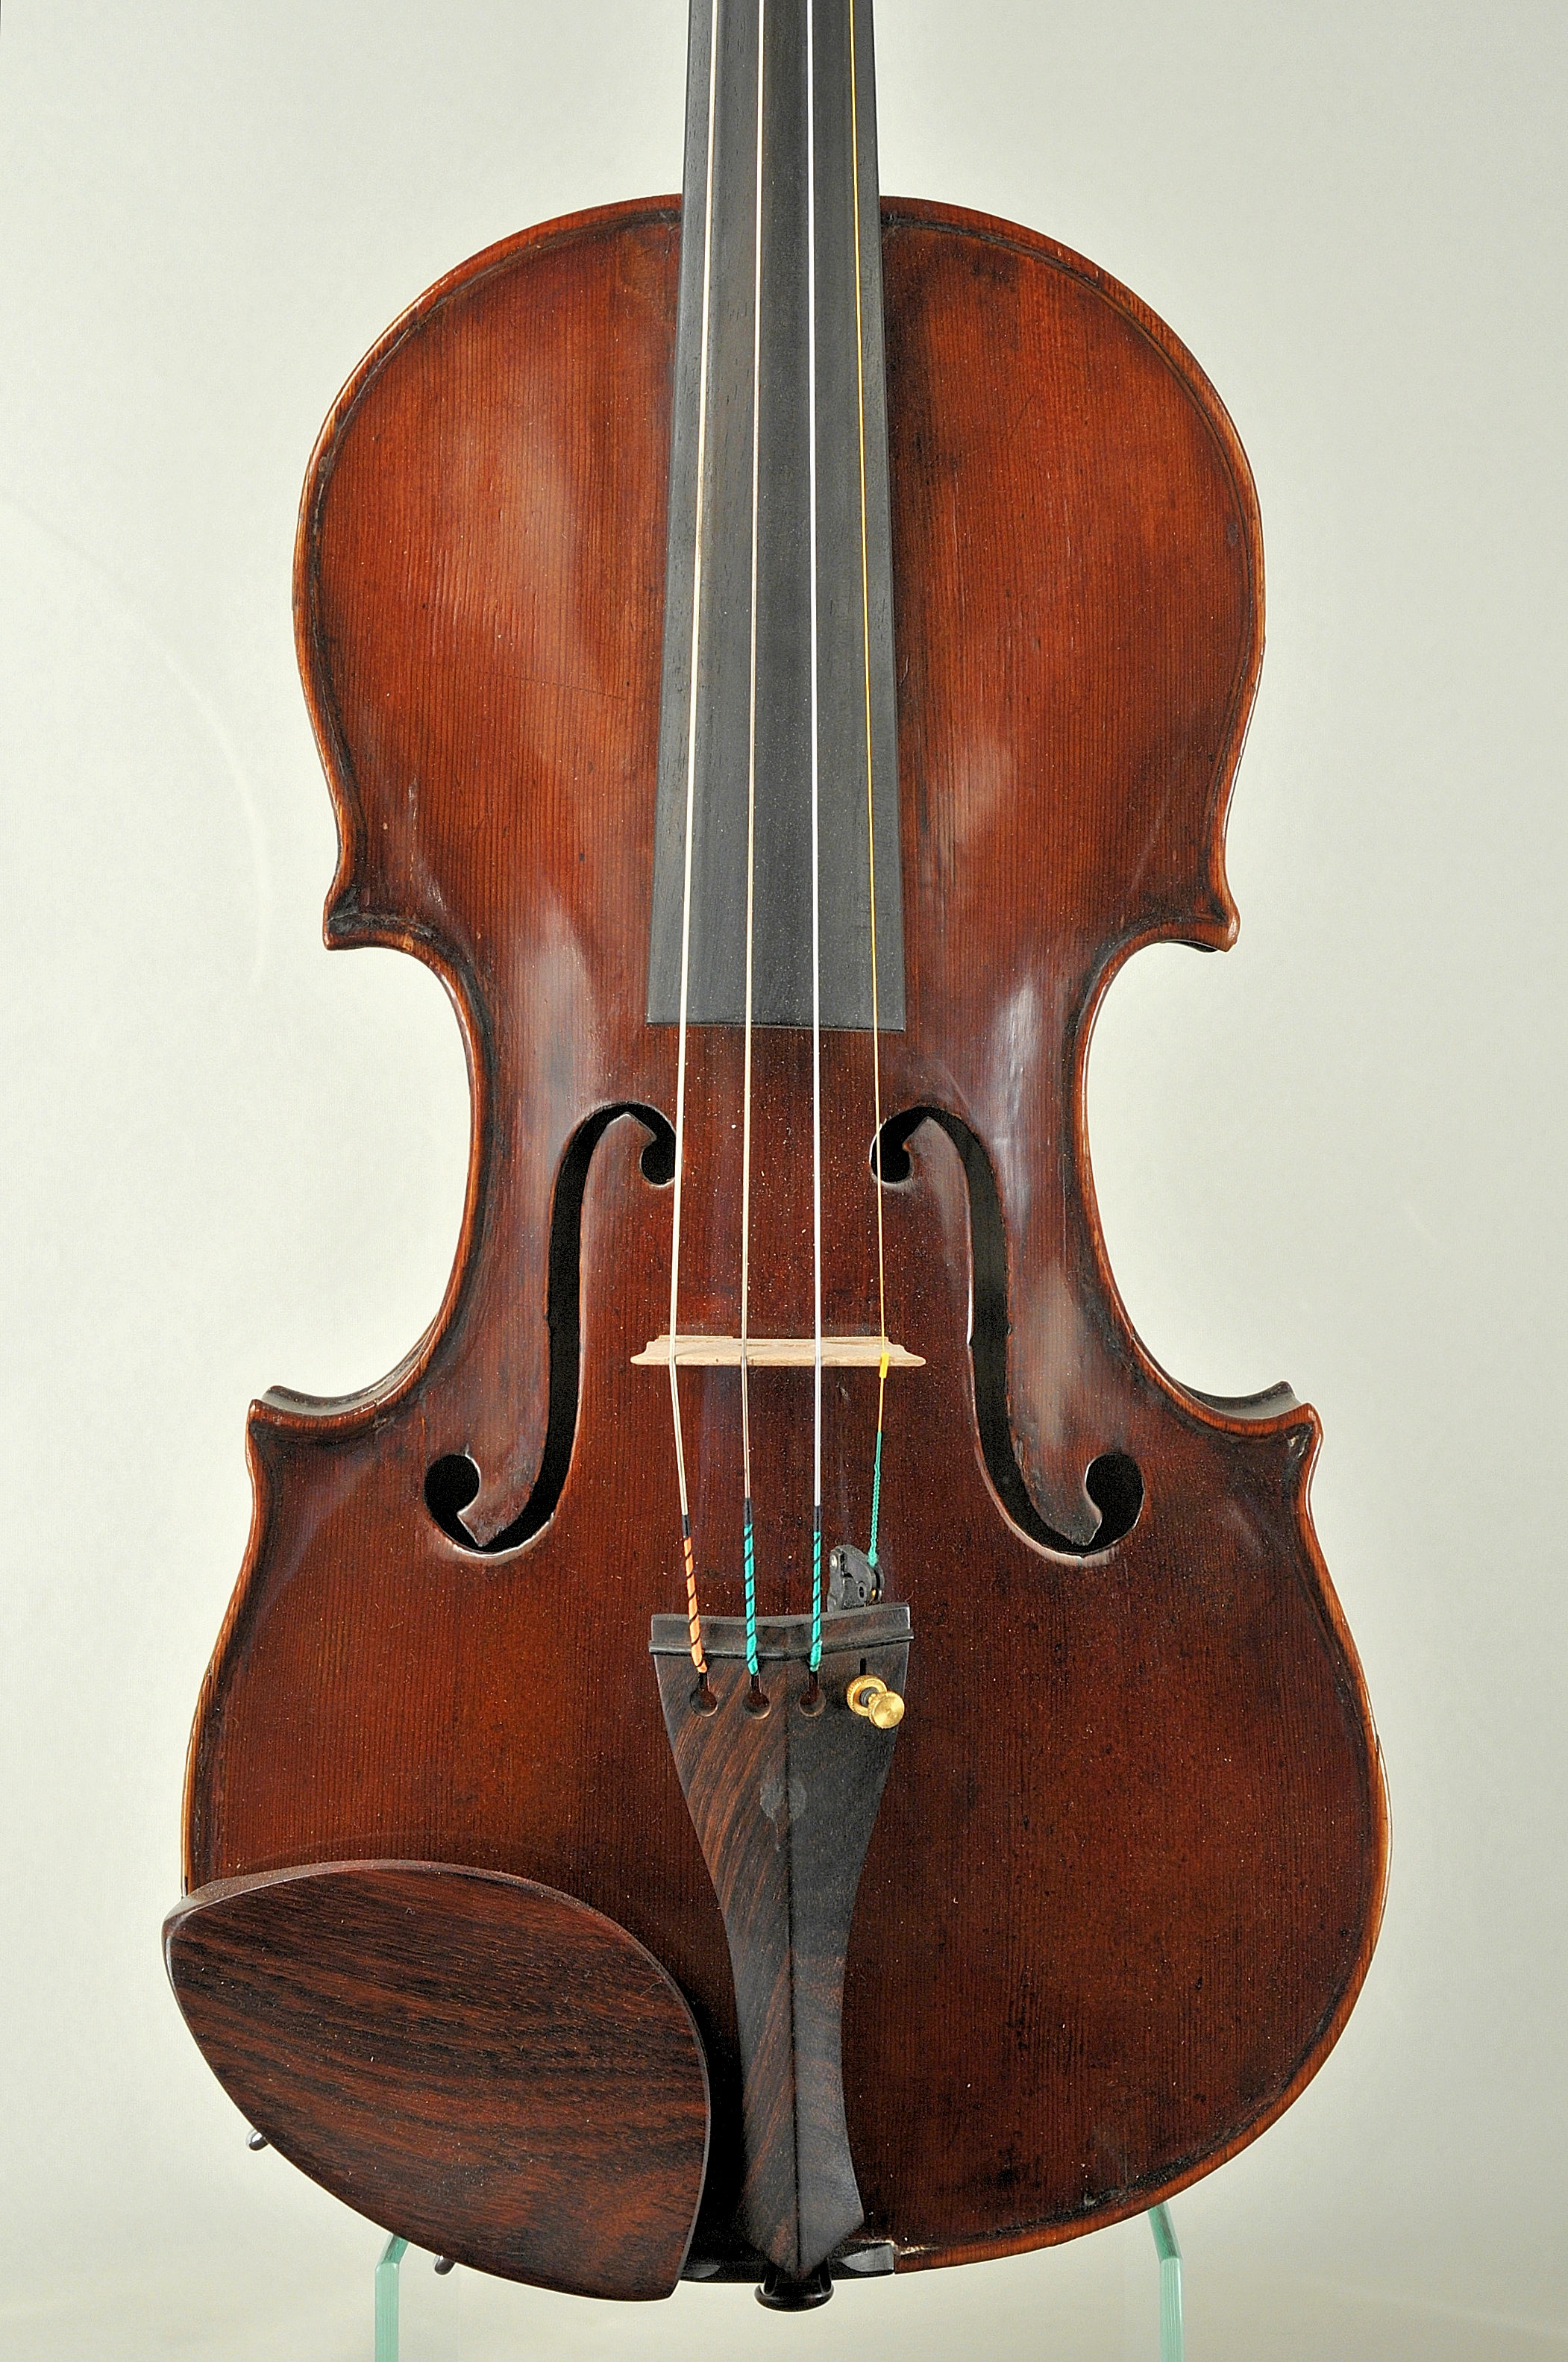 A. & R. Gagliano from Naple, 1800 Violin